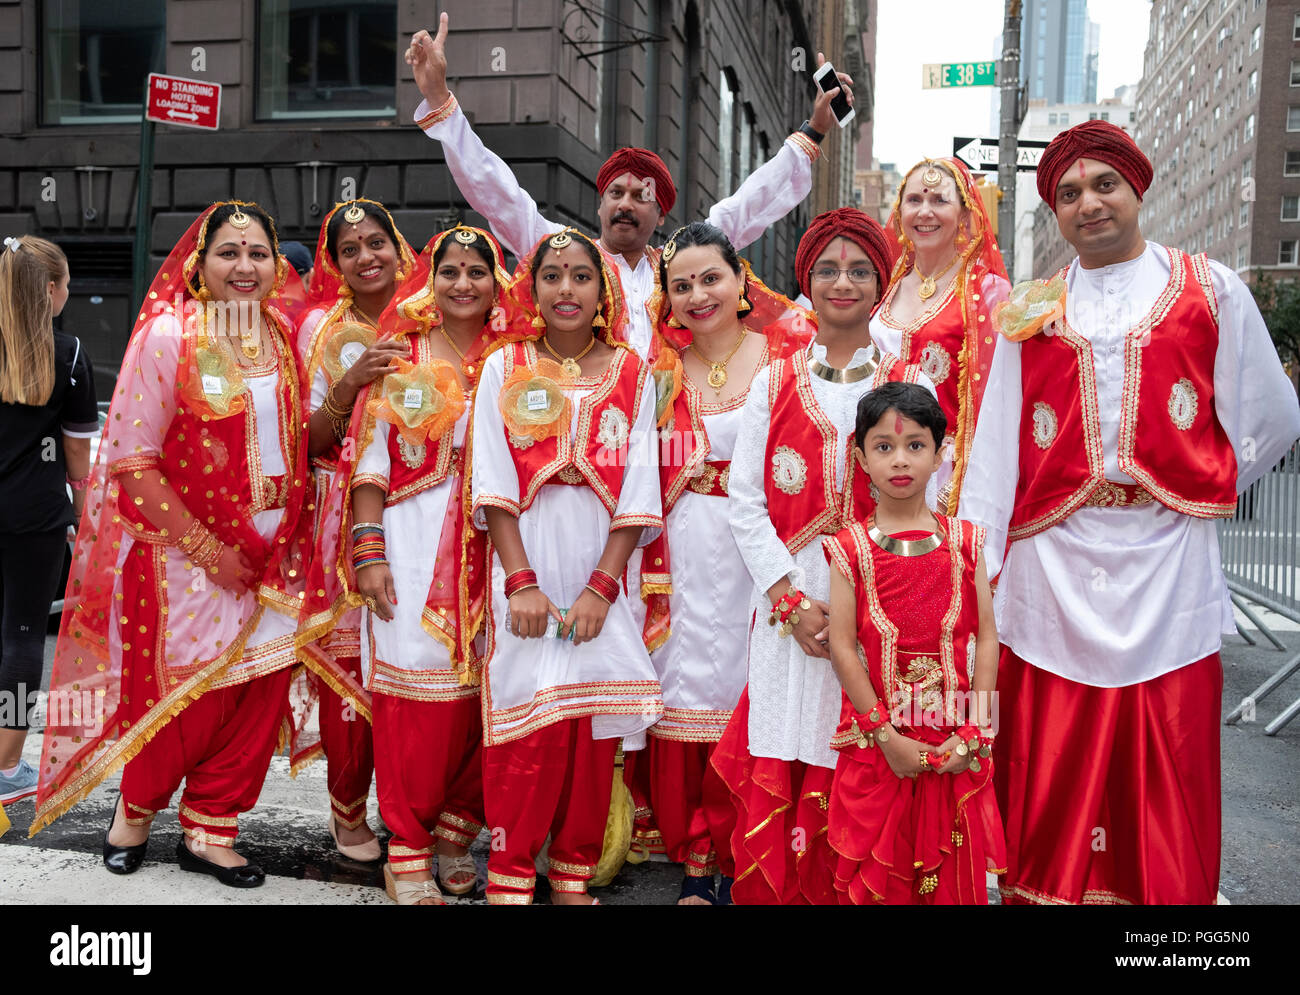 A extended family in matching red & white costumes at the 2018 India Day Parade in New York City. - Stock Image